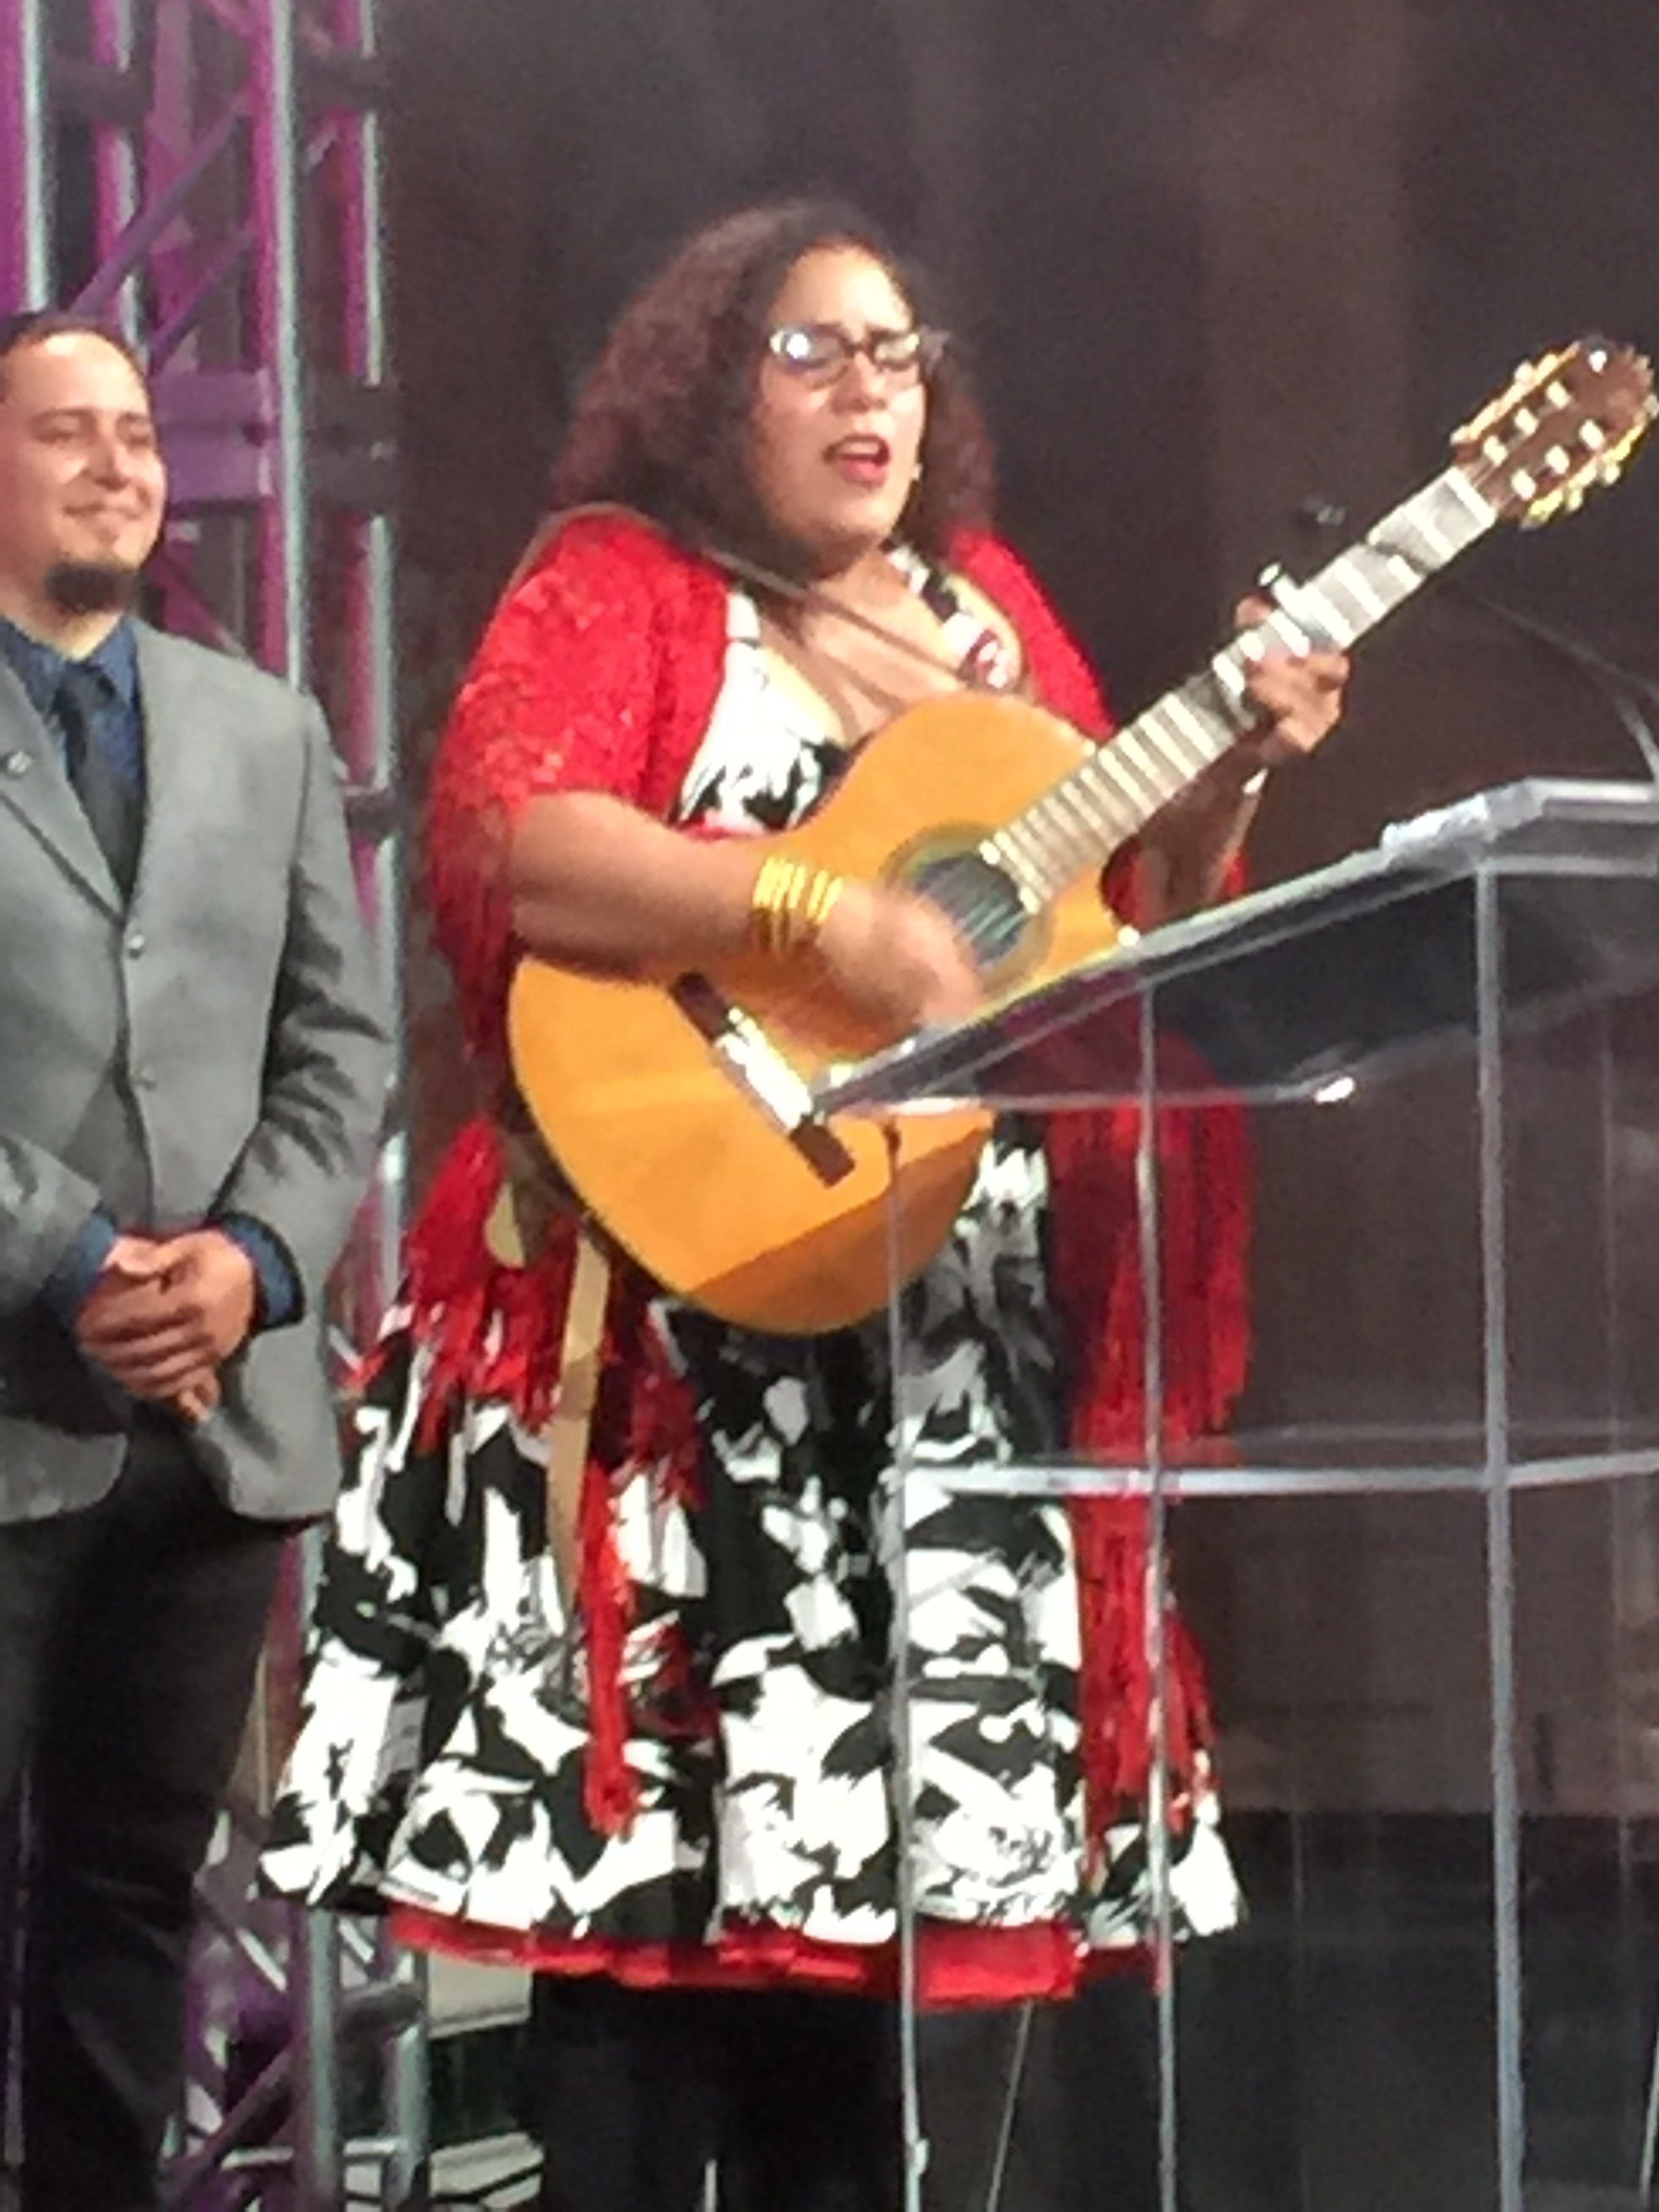 La Santa Cecelia  is a Grammy Award winning musician. She sang and thanked AltaMed for the honor while wearing her BuDhaGirl All Weather Bangles.